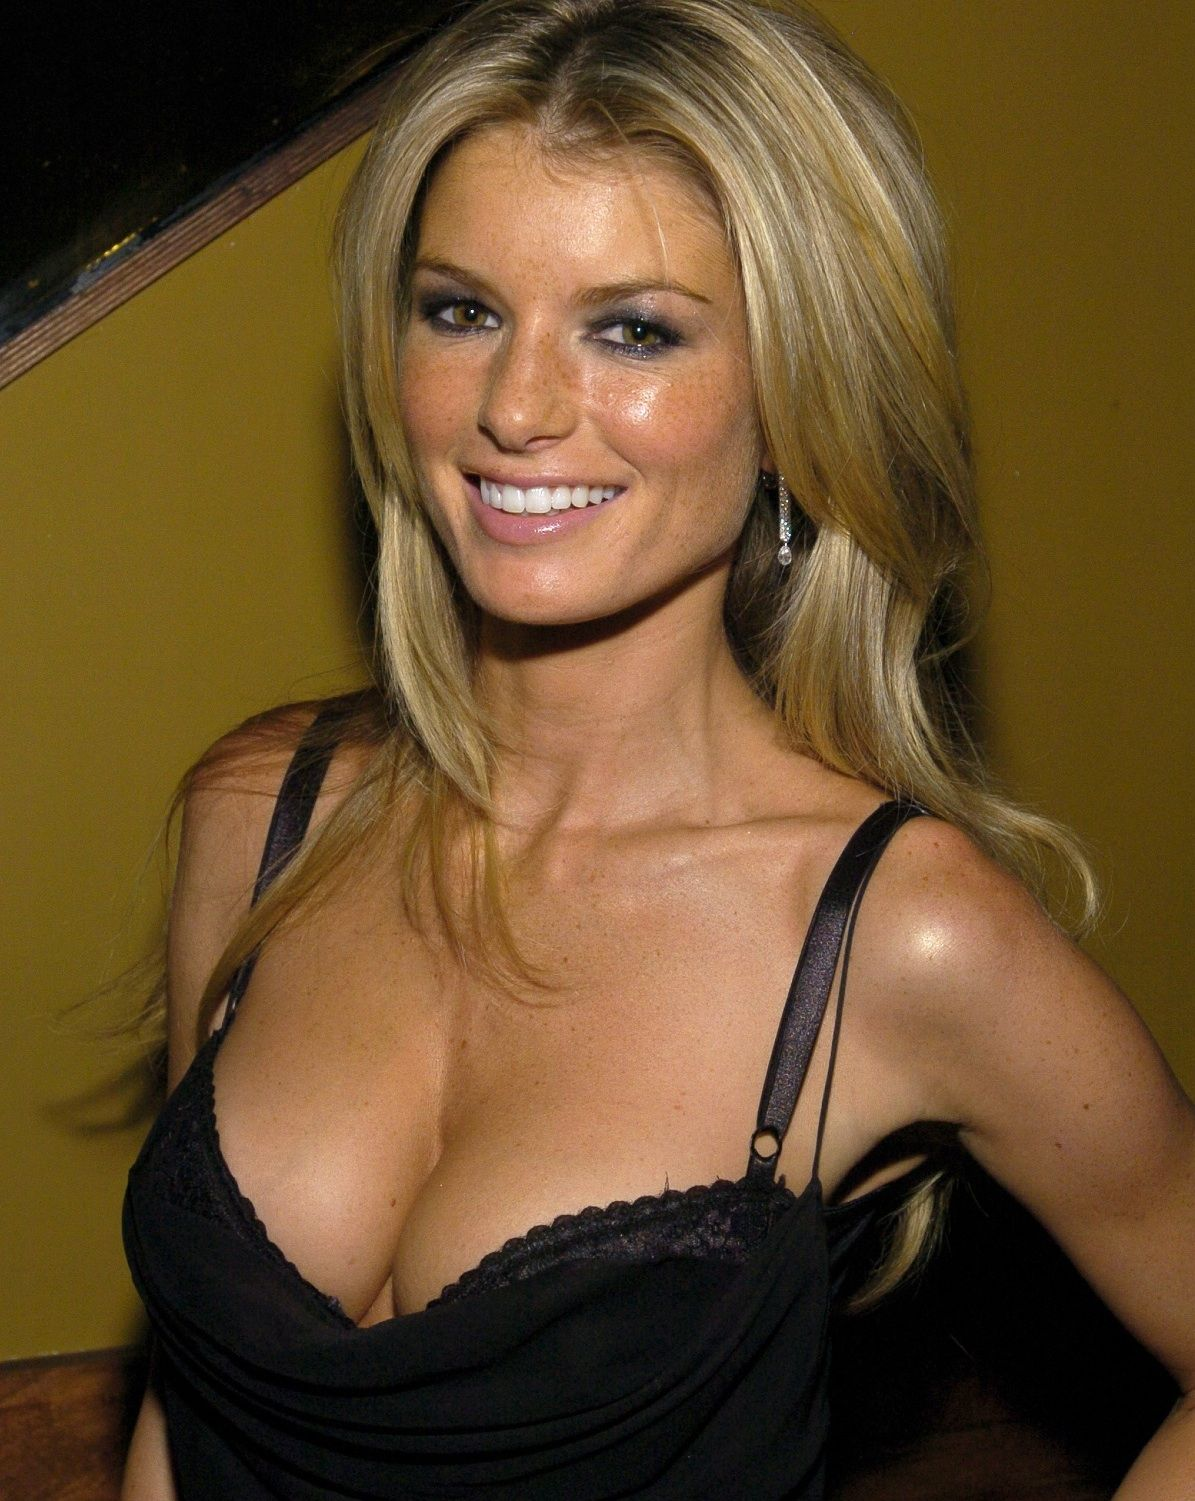 Marisa Miller earned a  million dollar salary - leaving the net worth at 20 million in 2018